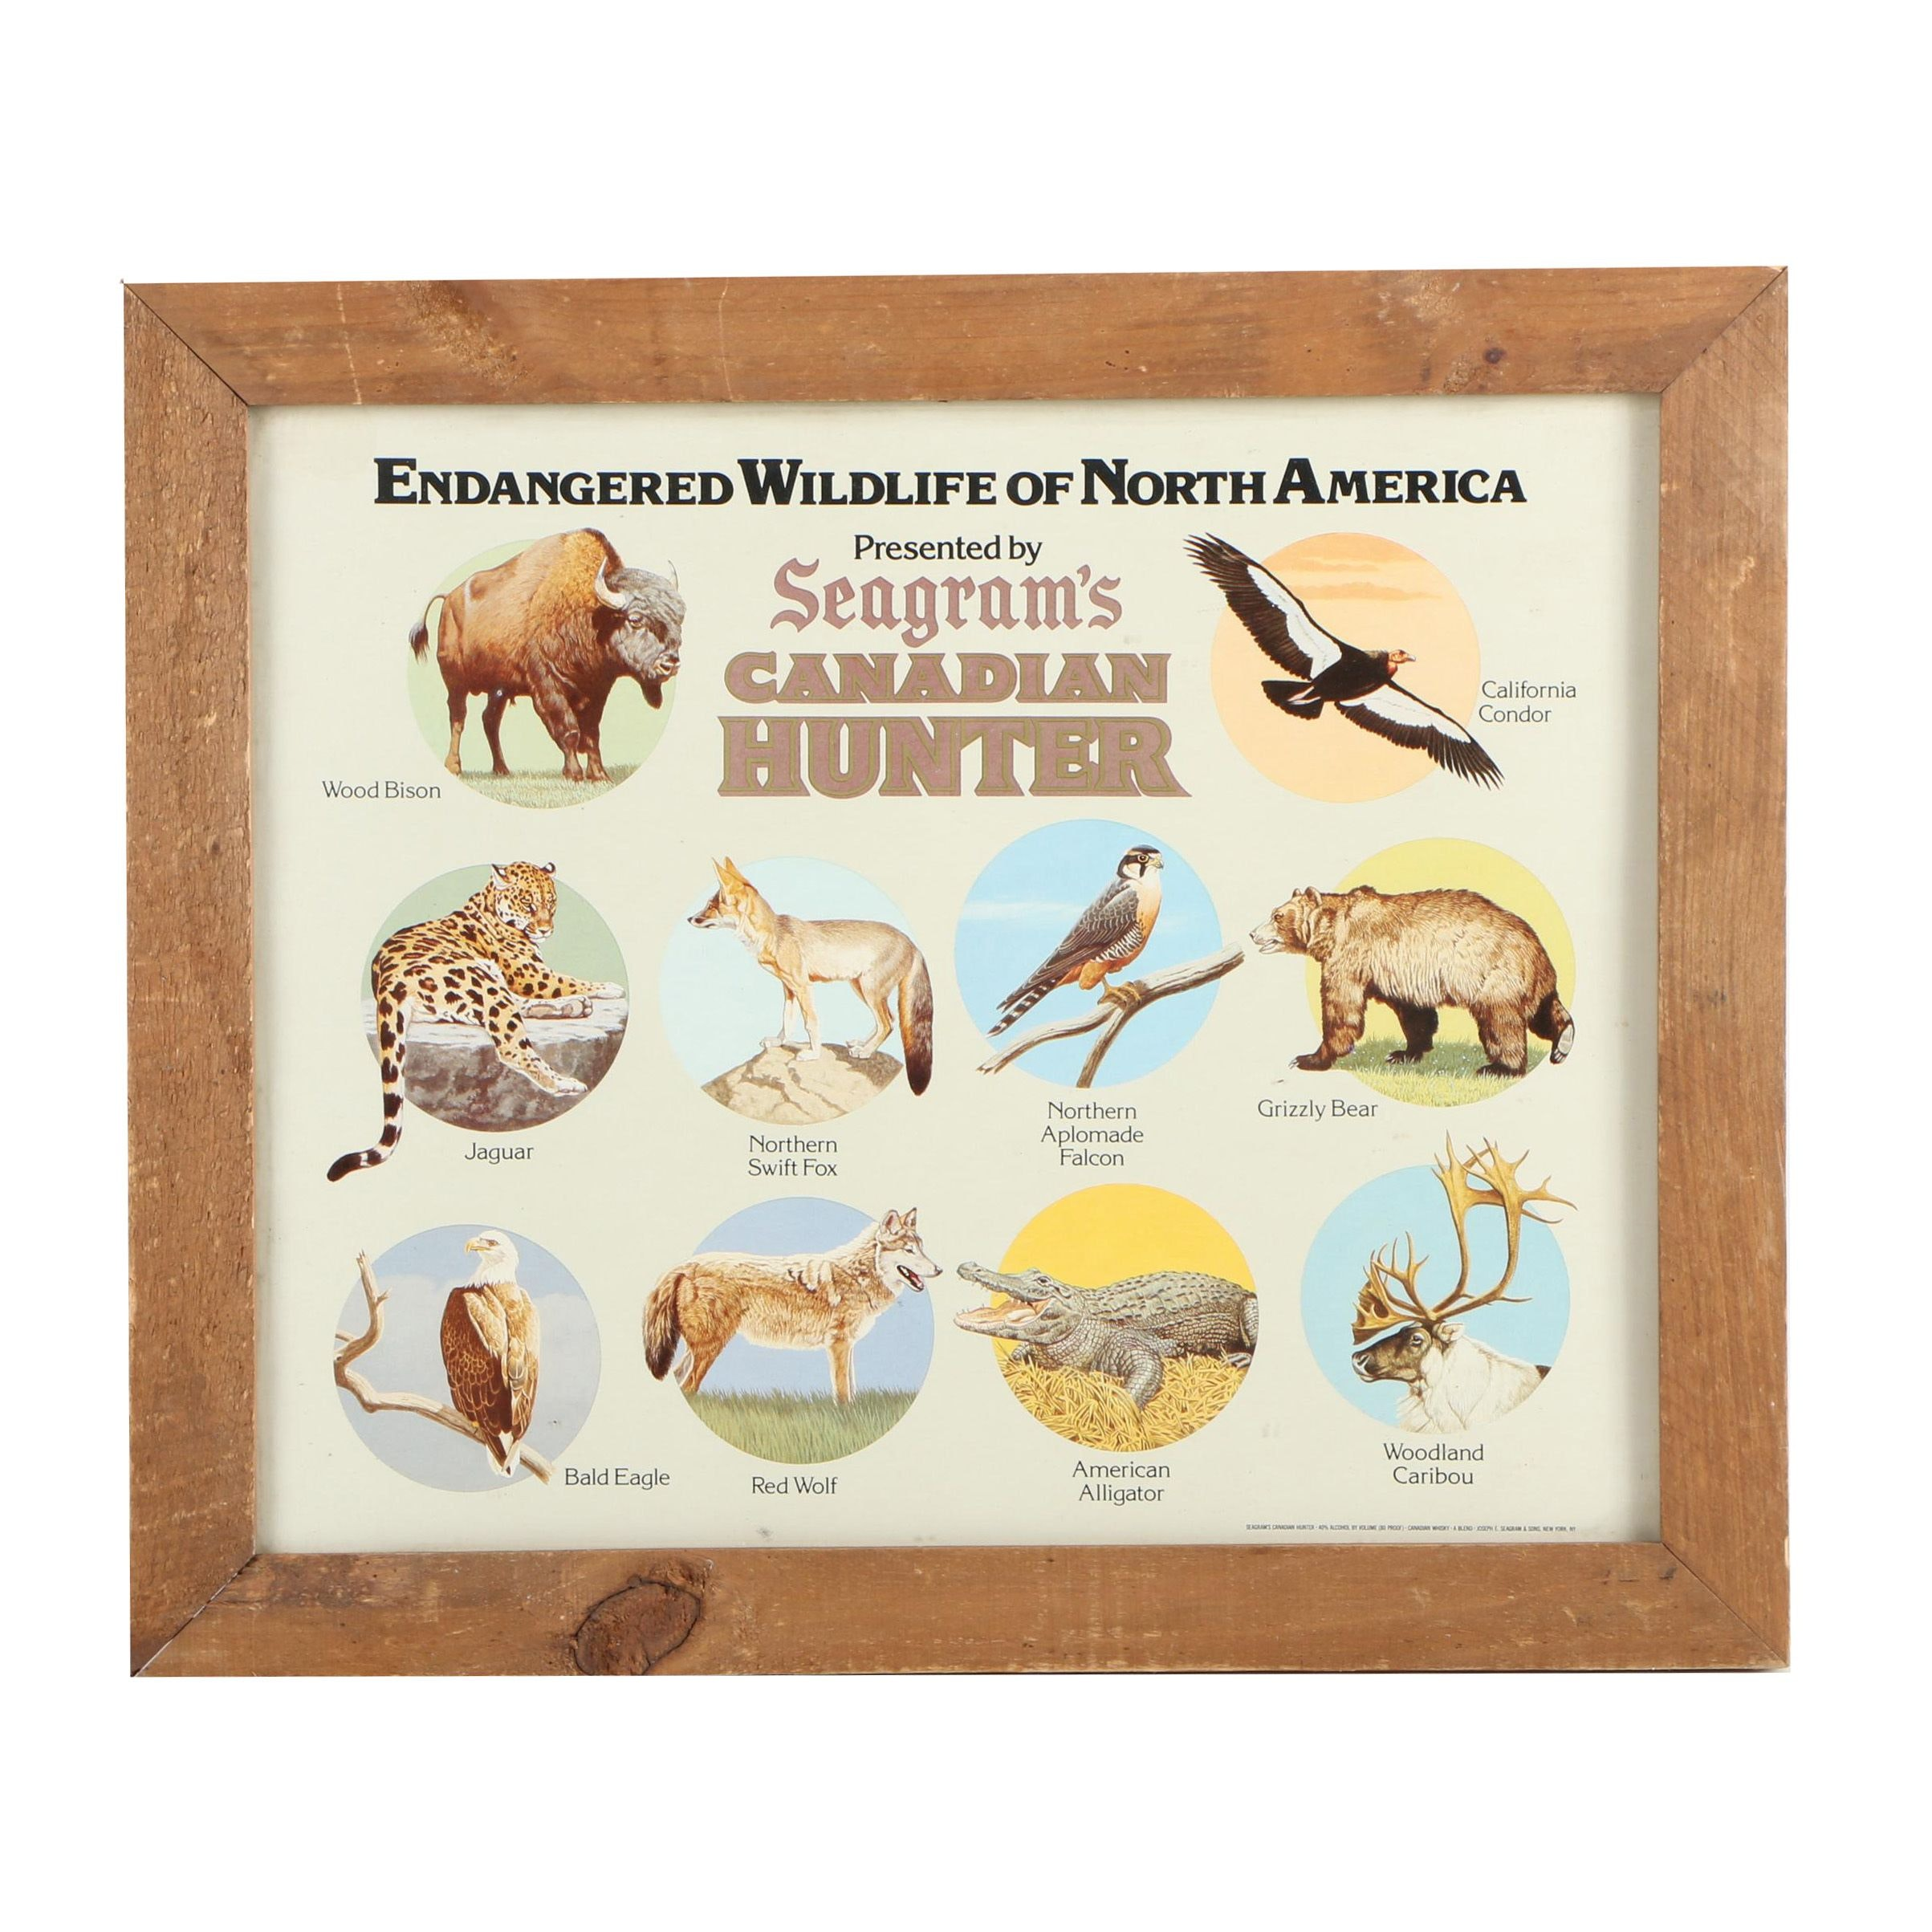 Offset Lithographic Advertisement for Seagram's of Endangered Wildlife